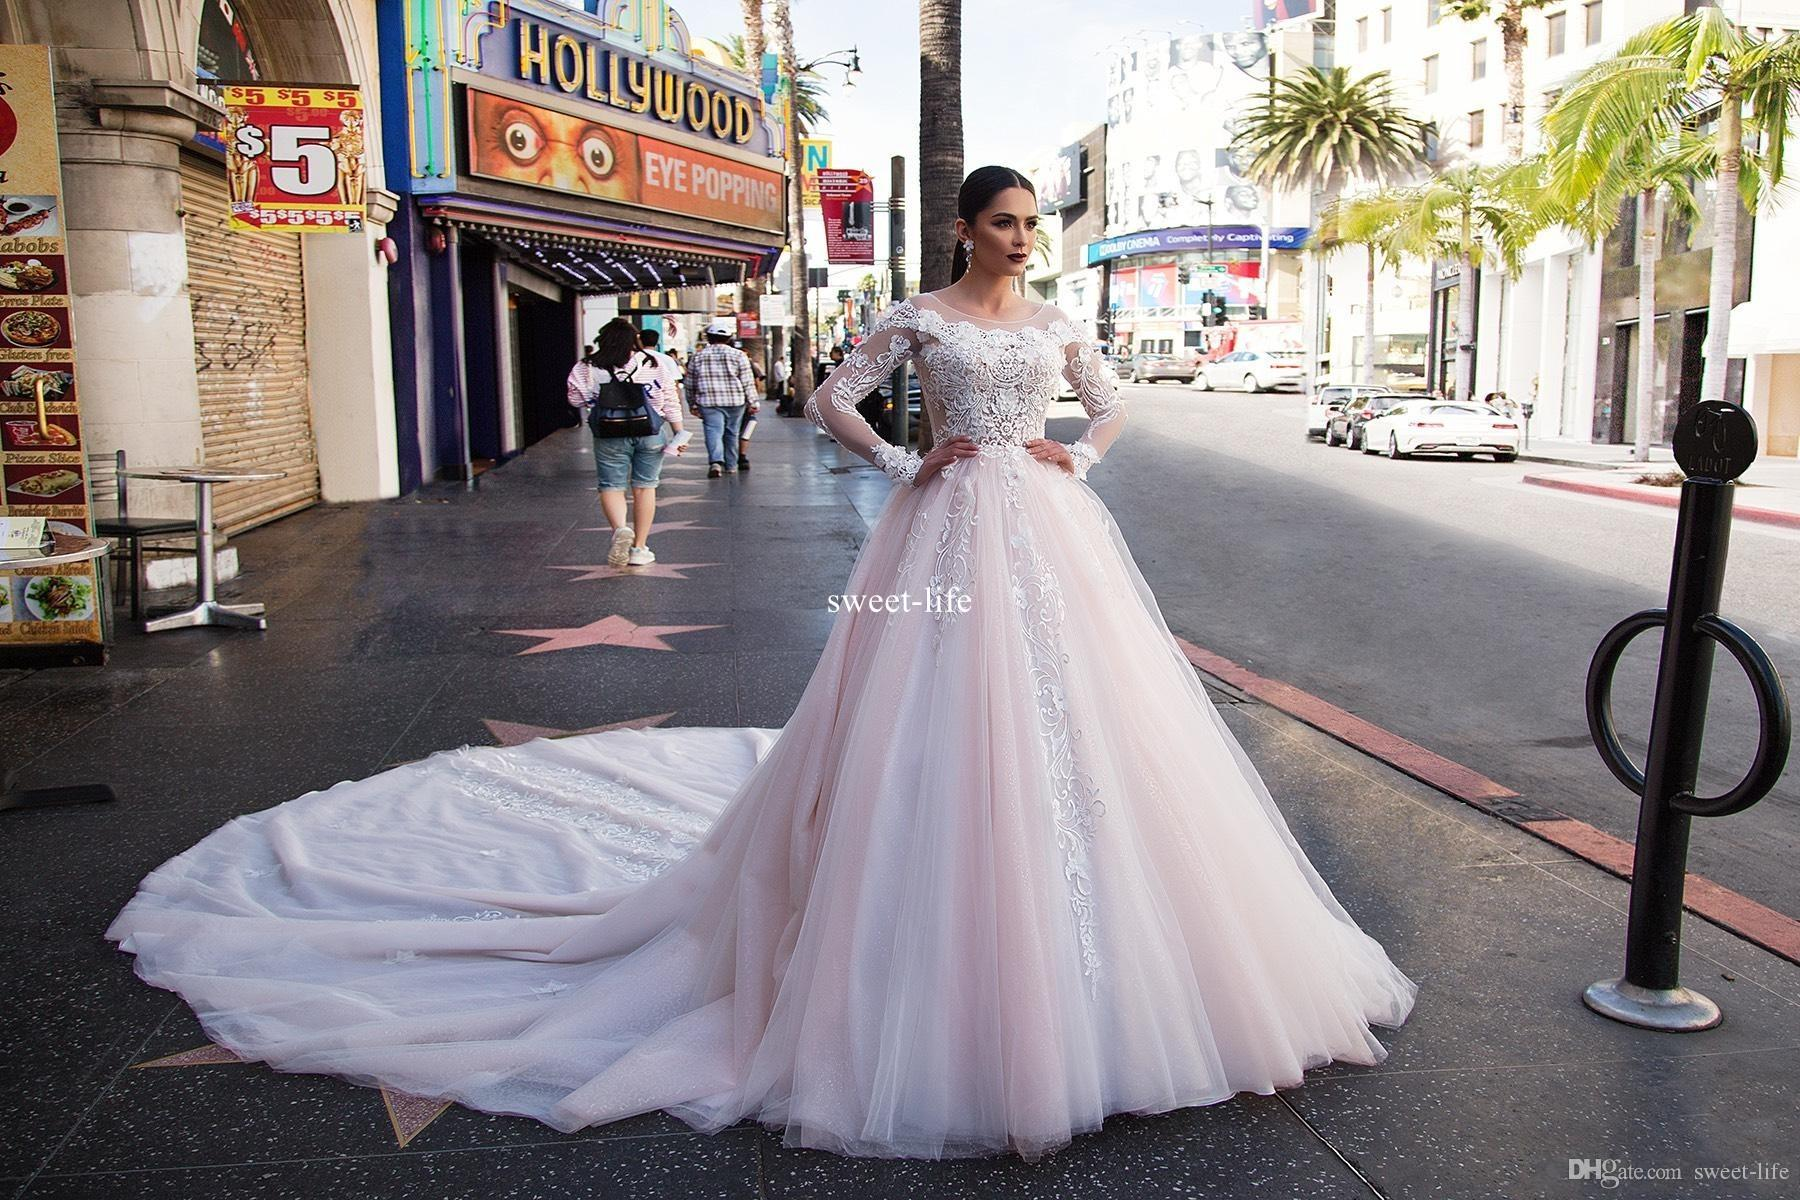 Blush Pink Long Sleeve 2017 Ball Gown Wedding Dresses Scoop Illusion Zipper Empire 3D-Floral Appliques Tulle Tiered Skirts Sweep Train Dress